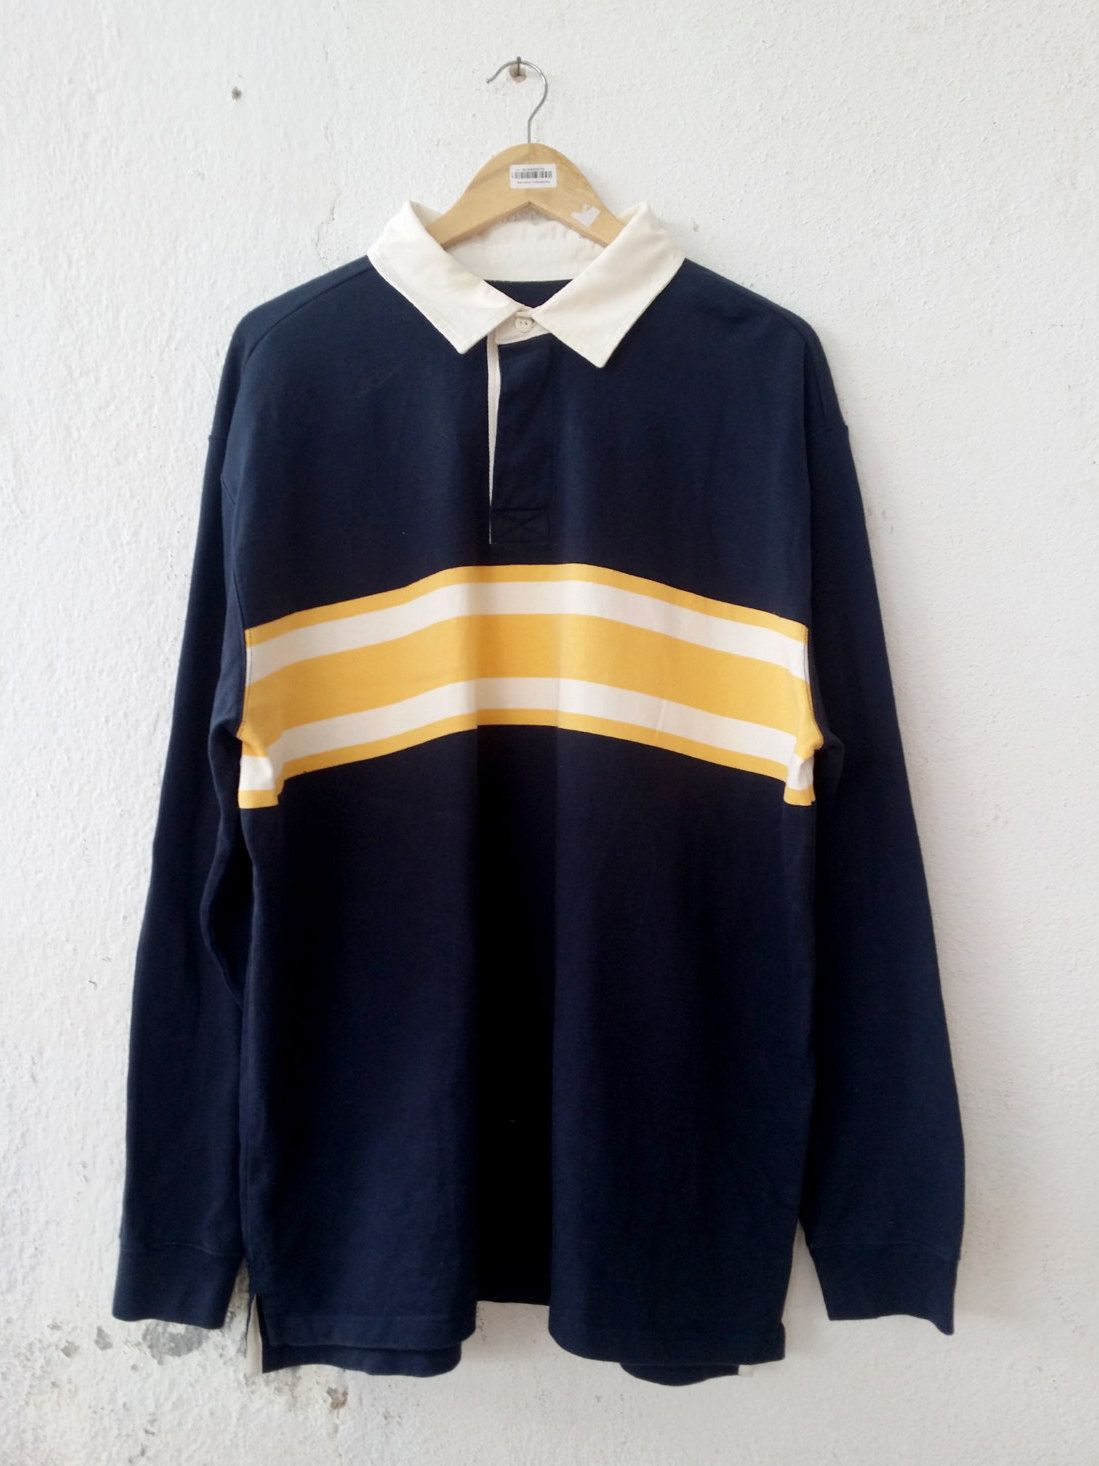 5026c0323f0fdd Vintage 90 s LL BEAMS Stripe Casual Wear Polo Shirt Rugby Shirts Swag Hip  Hop Street wear size XL VS73 by fiestorevintage on Etsy